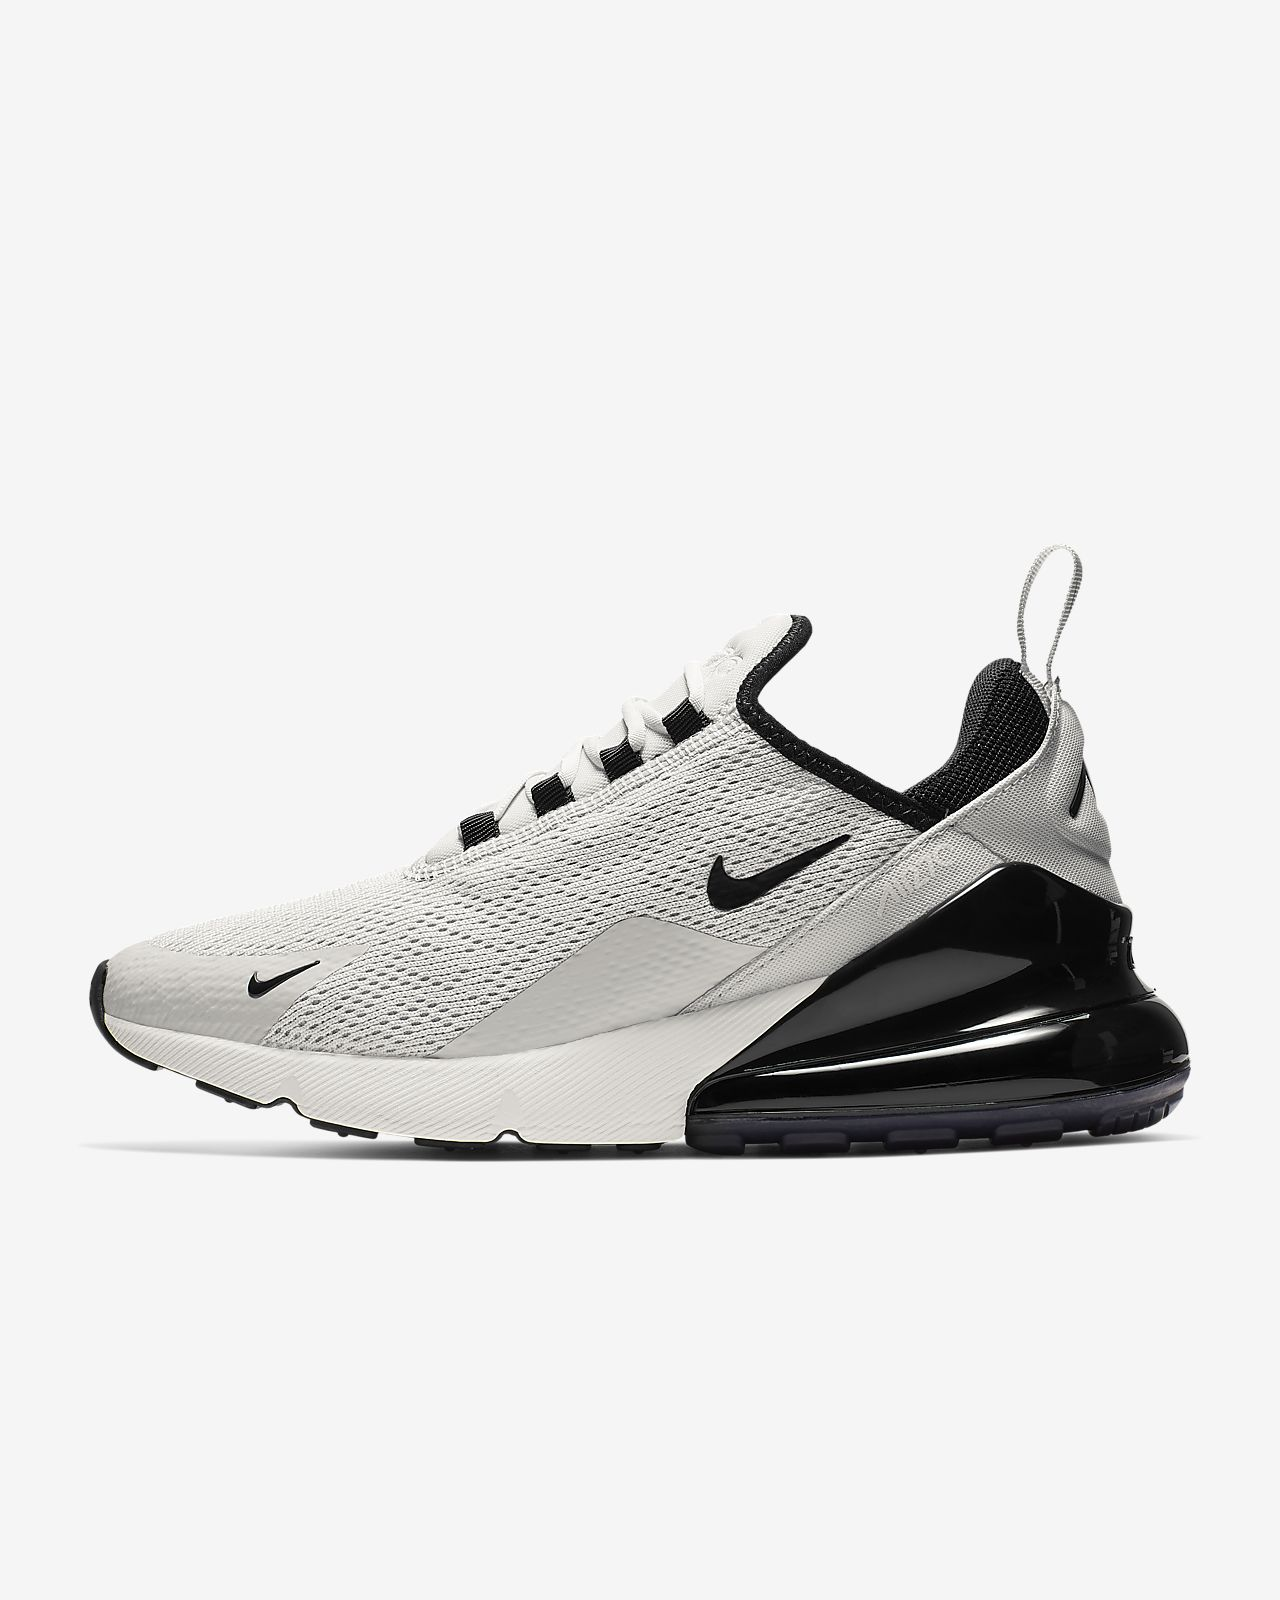 71cdf297e5 Nike Air Max 270 Women's Shoe. Nike.com GB